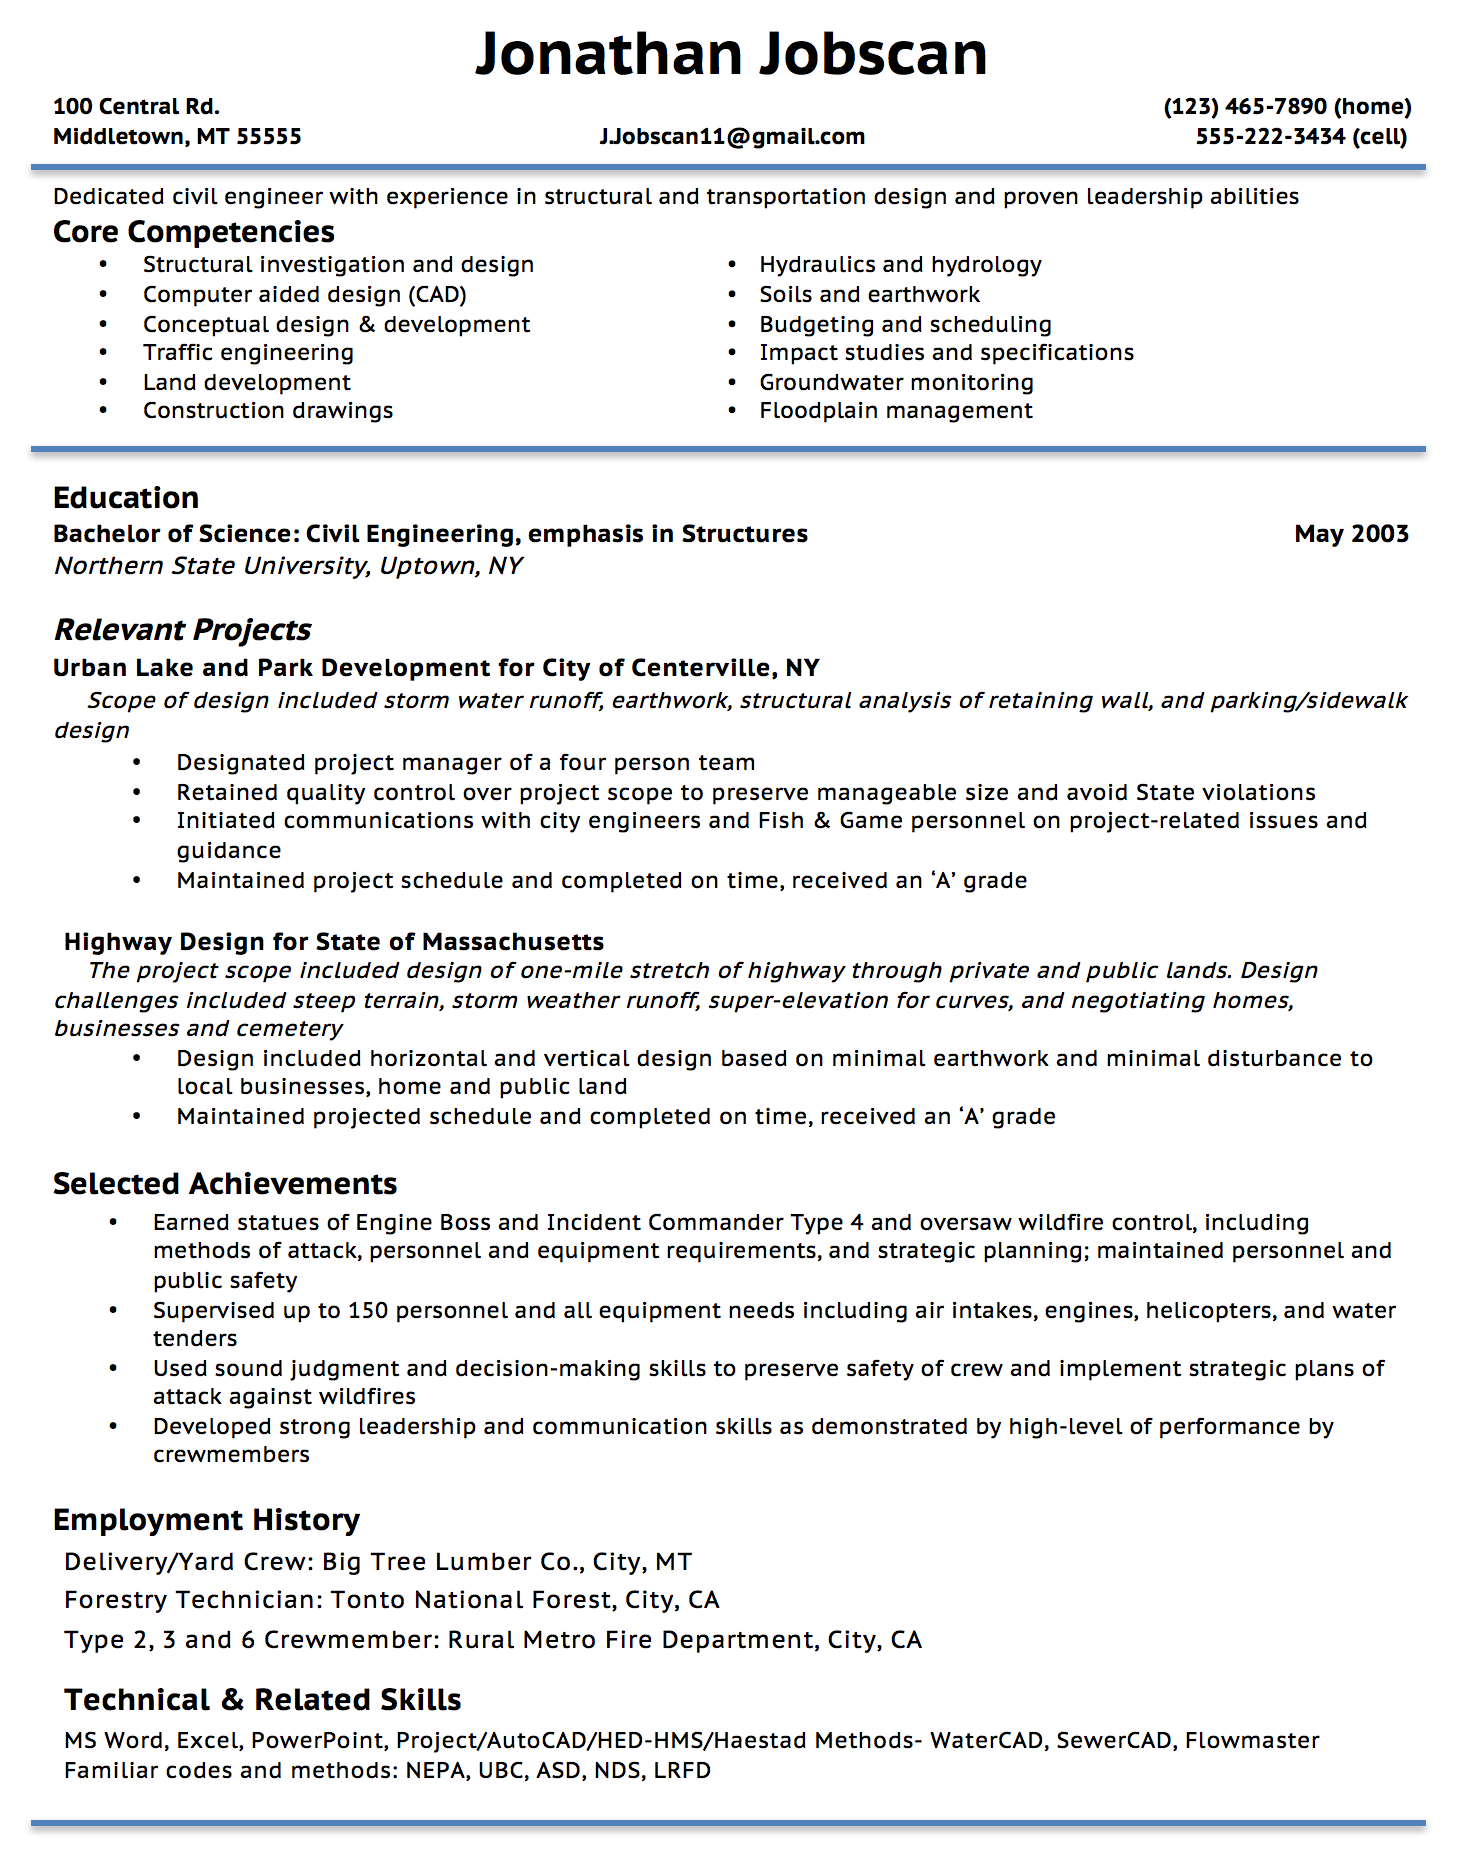 Opposenewapstandardsus  Remarkable Resume Writing Guide  Jobscan With Exquisite Example Of A Functional Resume Format With Lovely References Page Resume Also Entry Level Finance Resume In Addition Resume Covers And Objective For Retail Resume As Well As Student Affairs Resume Additionally Sample Resume Letter From Jobscanco With Opposenewapstandardsus  Exquisite Resume Writing Guide  Jobscan With Lovely Example Of A Functional Resume Format And Remarkable References Page Resume Also Entry Level Finance Resume In Addition Resume Covers From Jobscanco